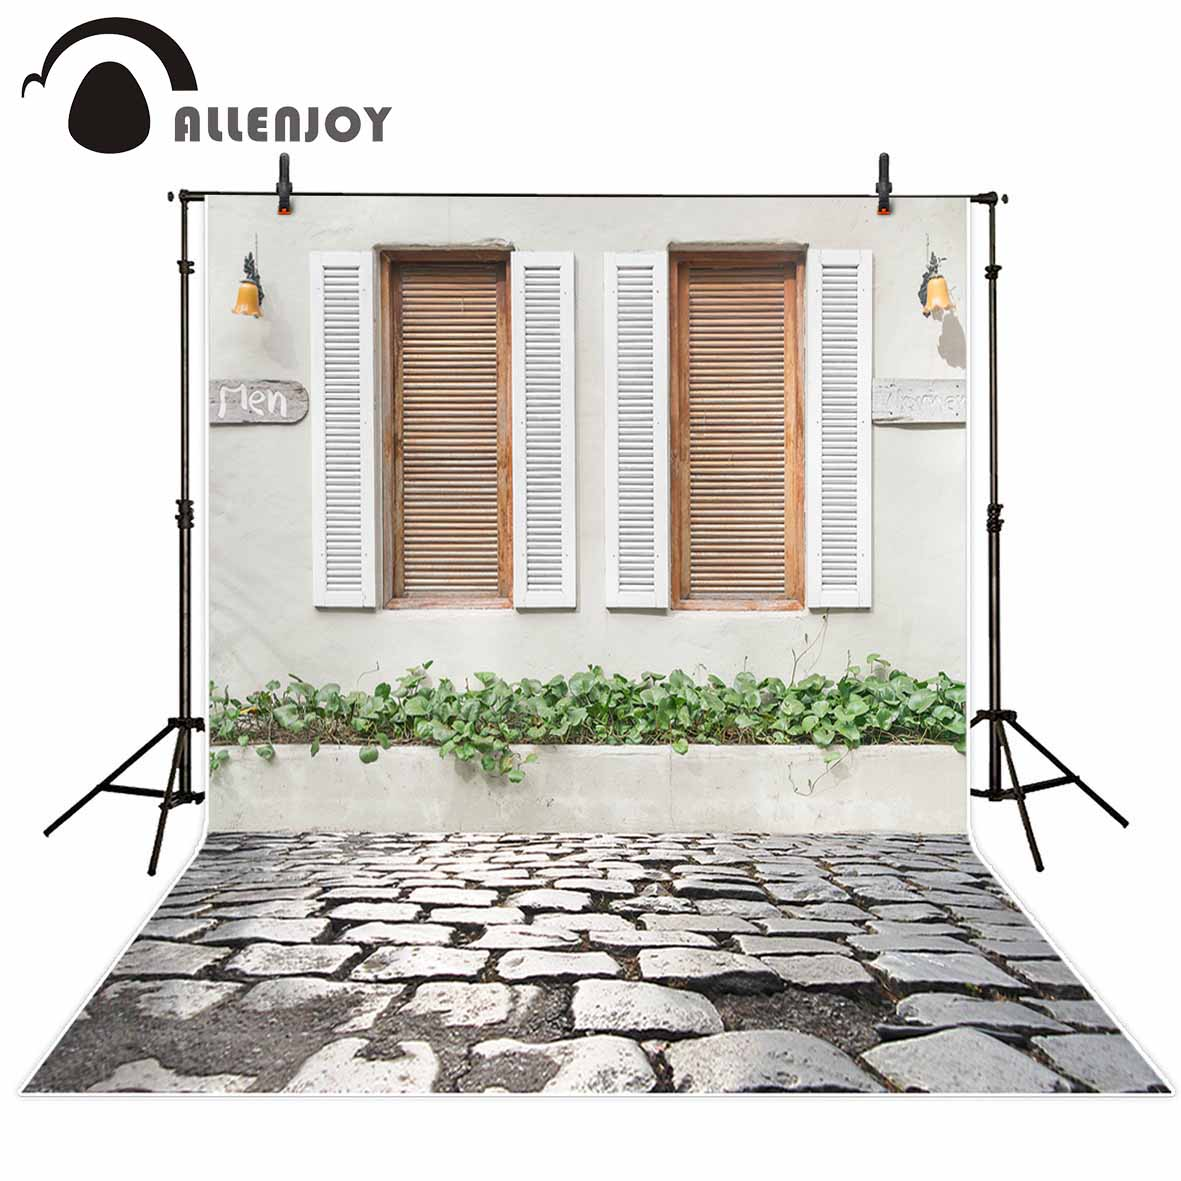 Allenjoy photographic background White natural plant shutters minimalist style new backdrop photocall photo printed customize